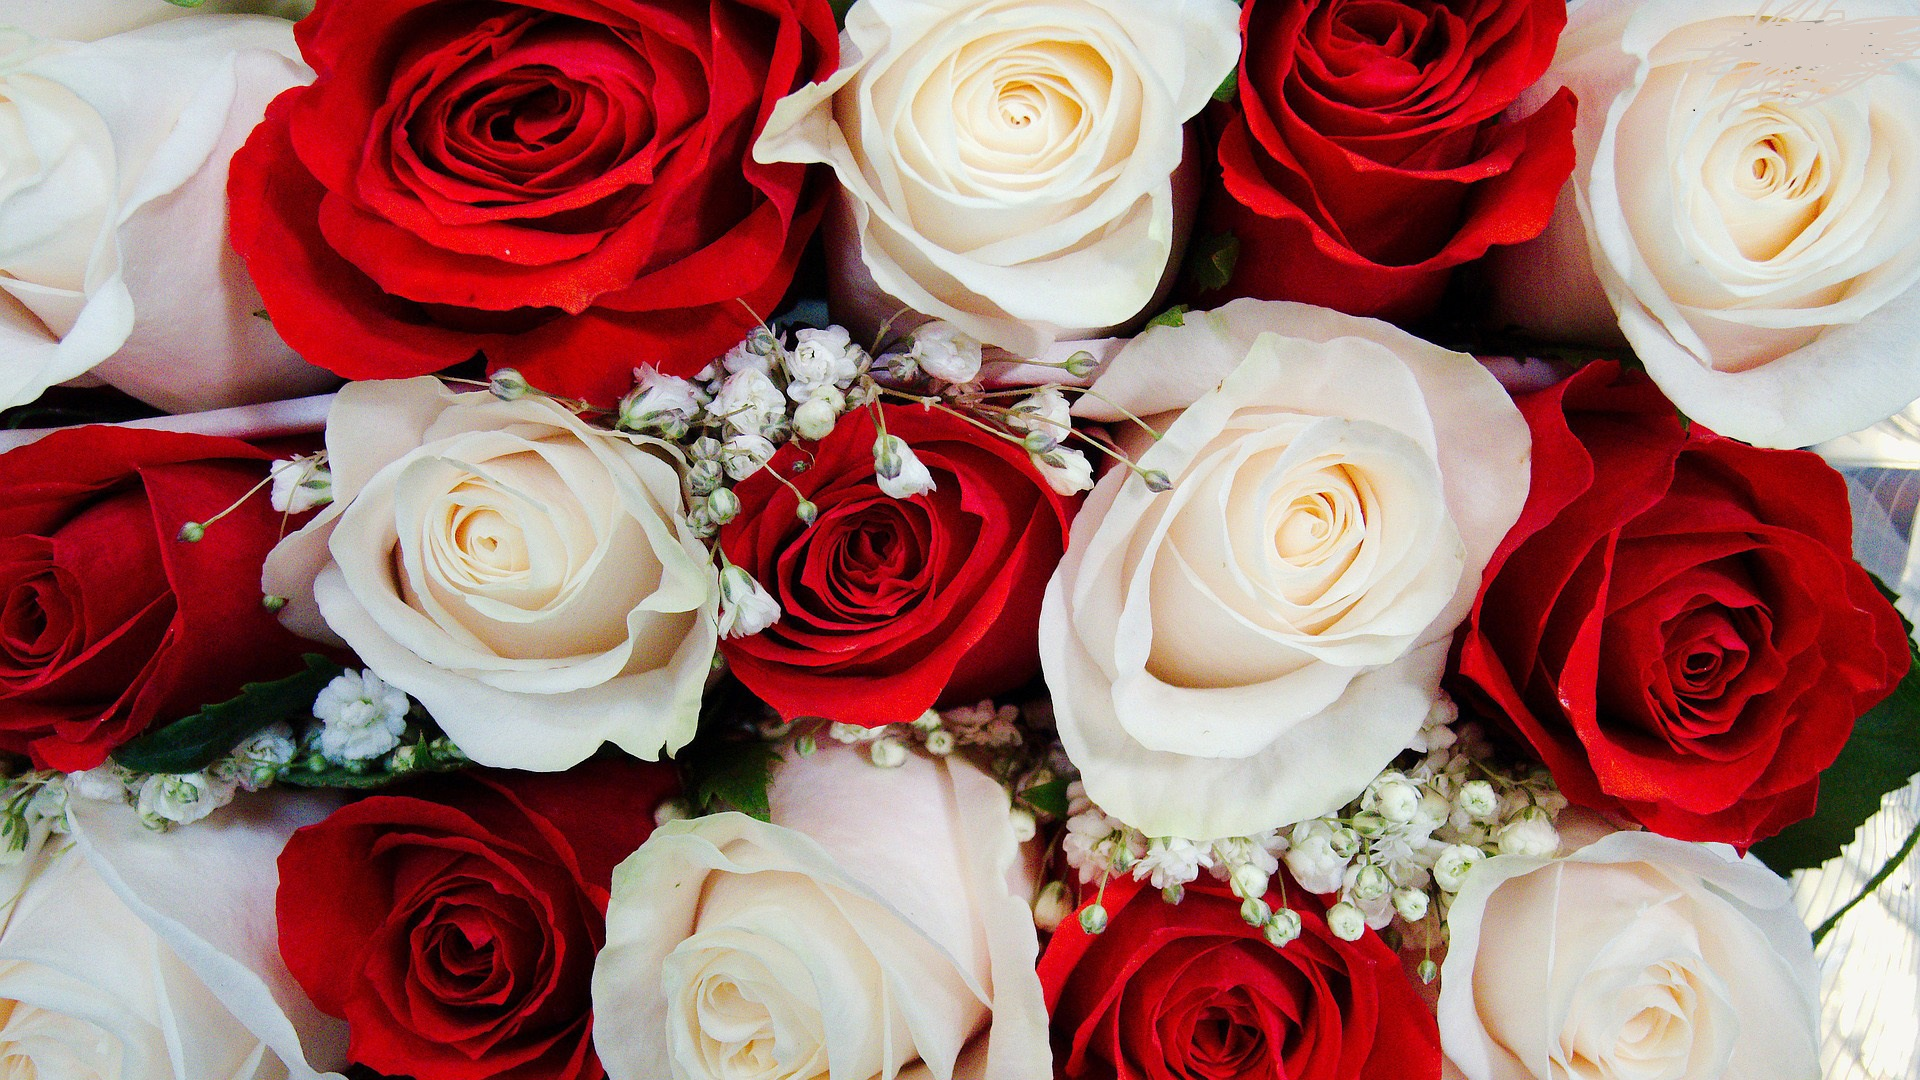 amazing-red-white-roses-free-wallpapers-hd - hd wallpaper